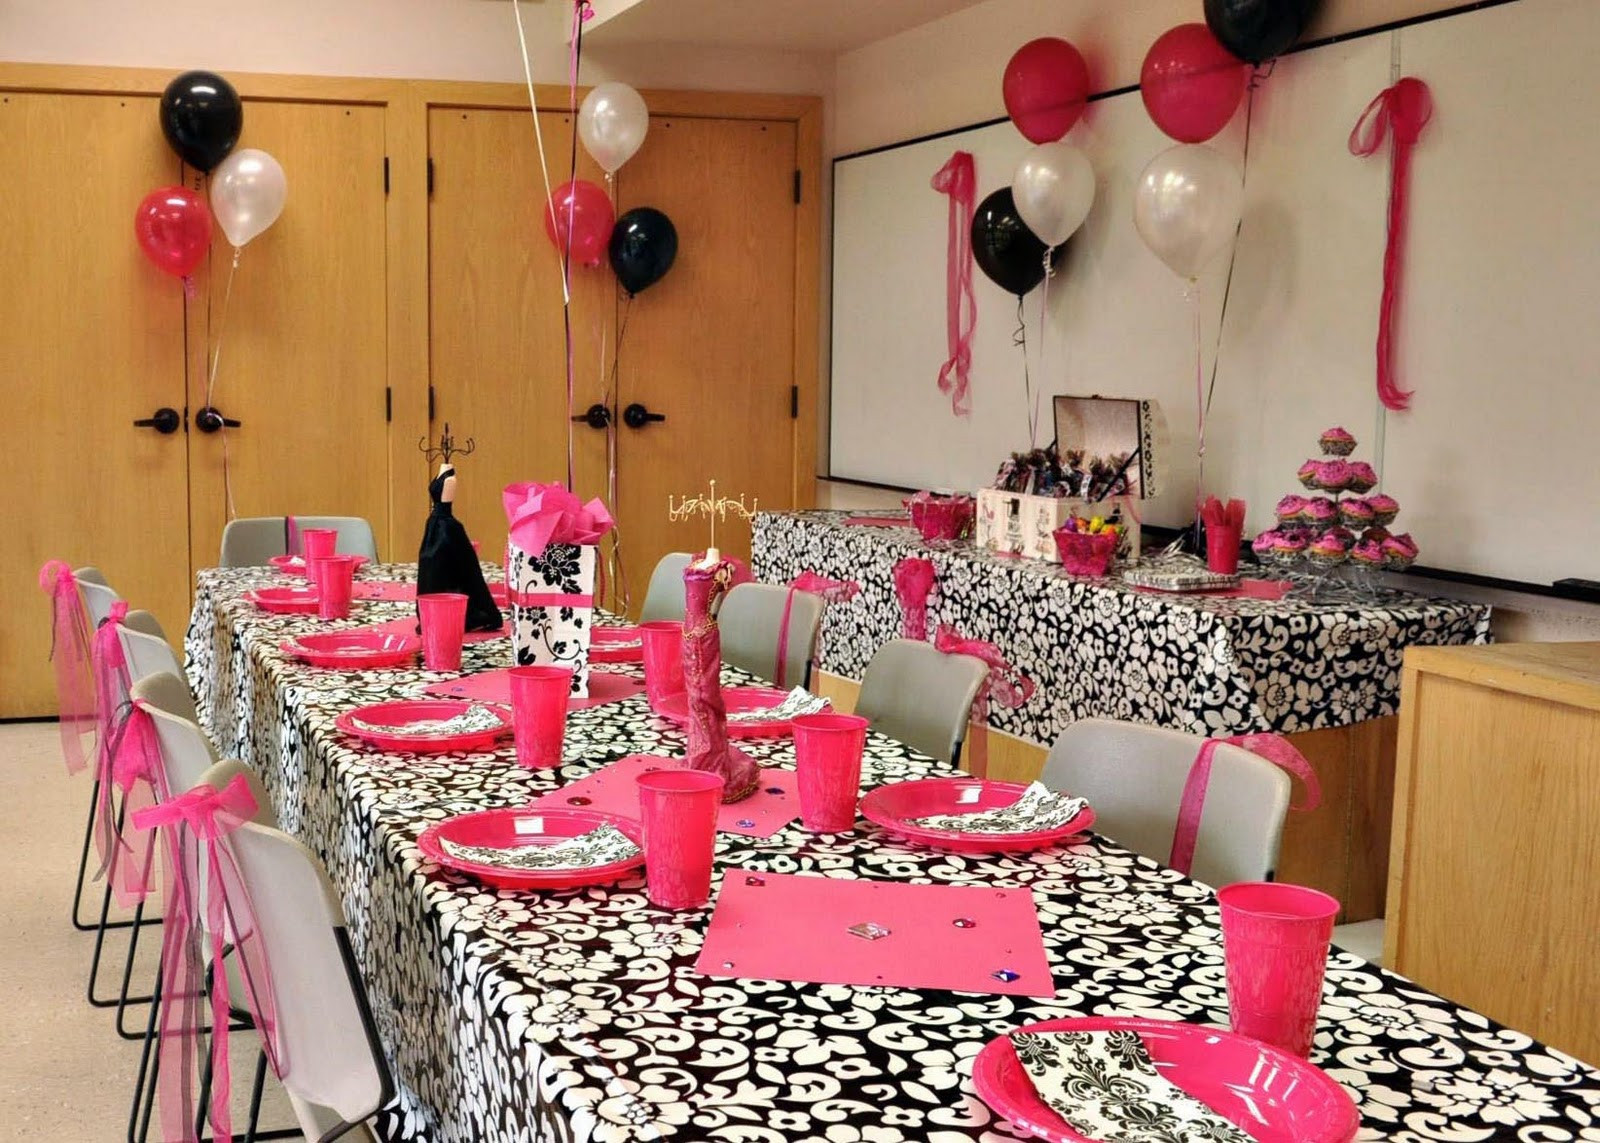 Best ideas about Birthday Party Project . Save or Pin Shelley Dee graphy Project Runway Birthday Party Now.